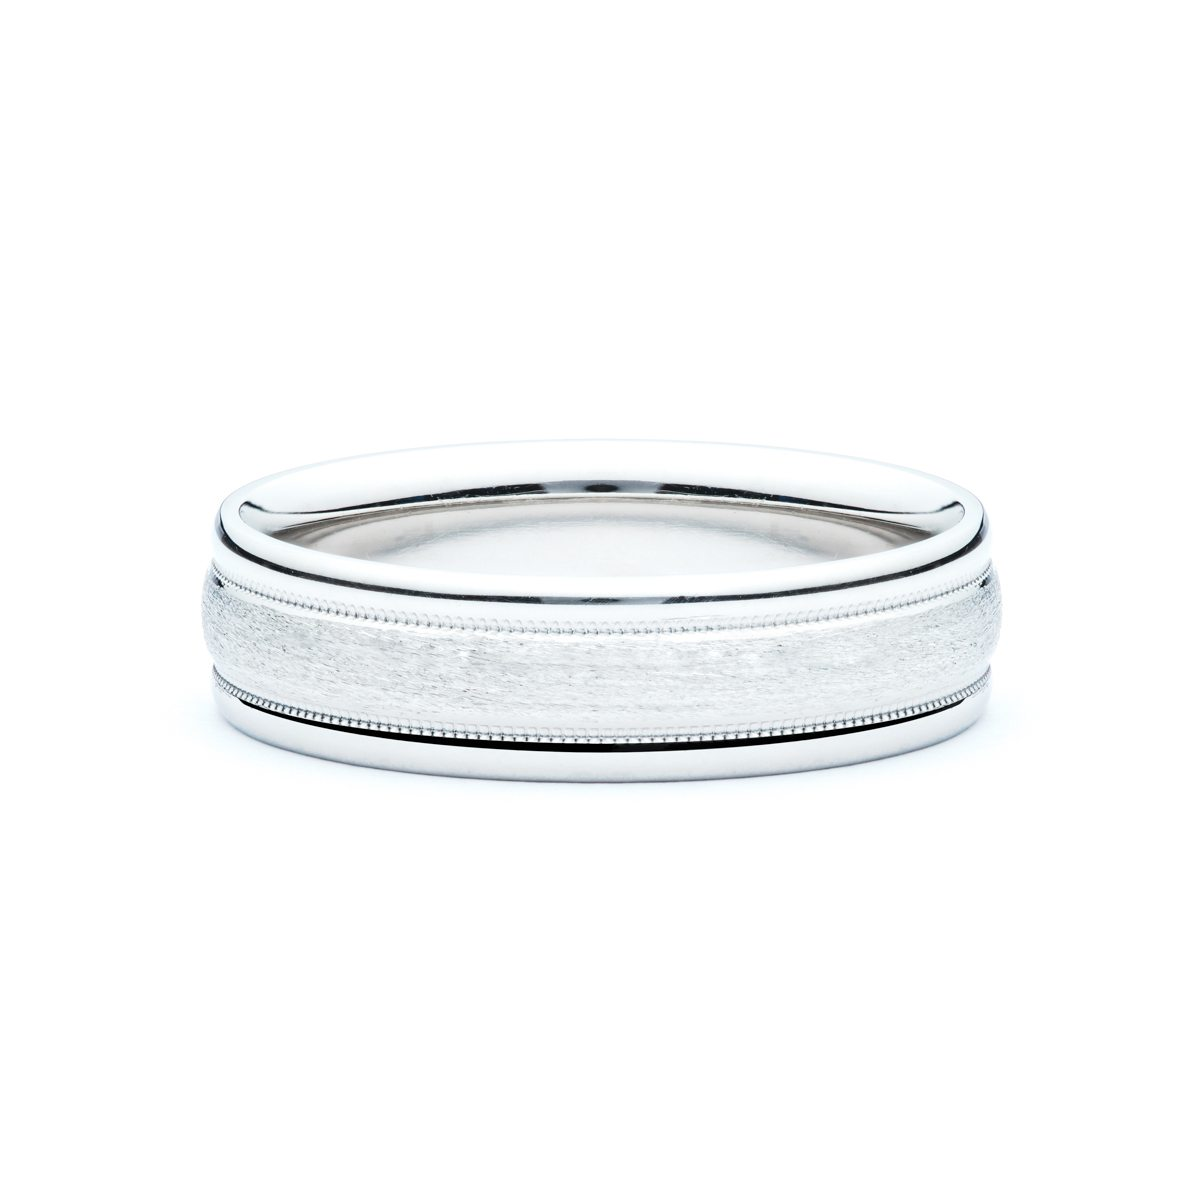 wedding band white gold mens platinum brushed finish blingby caen